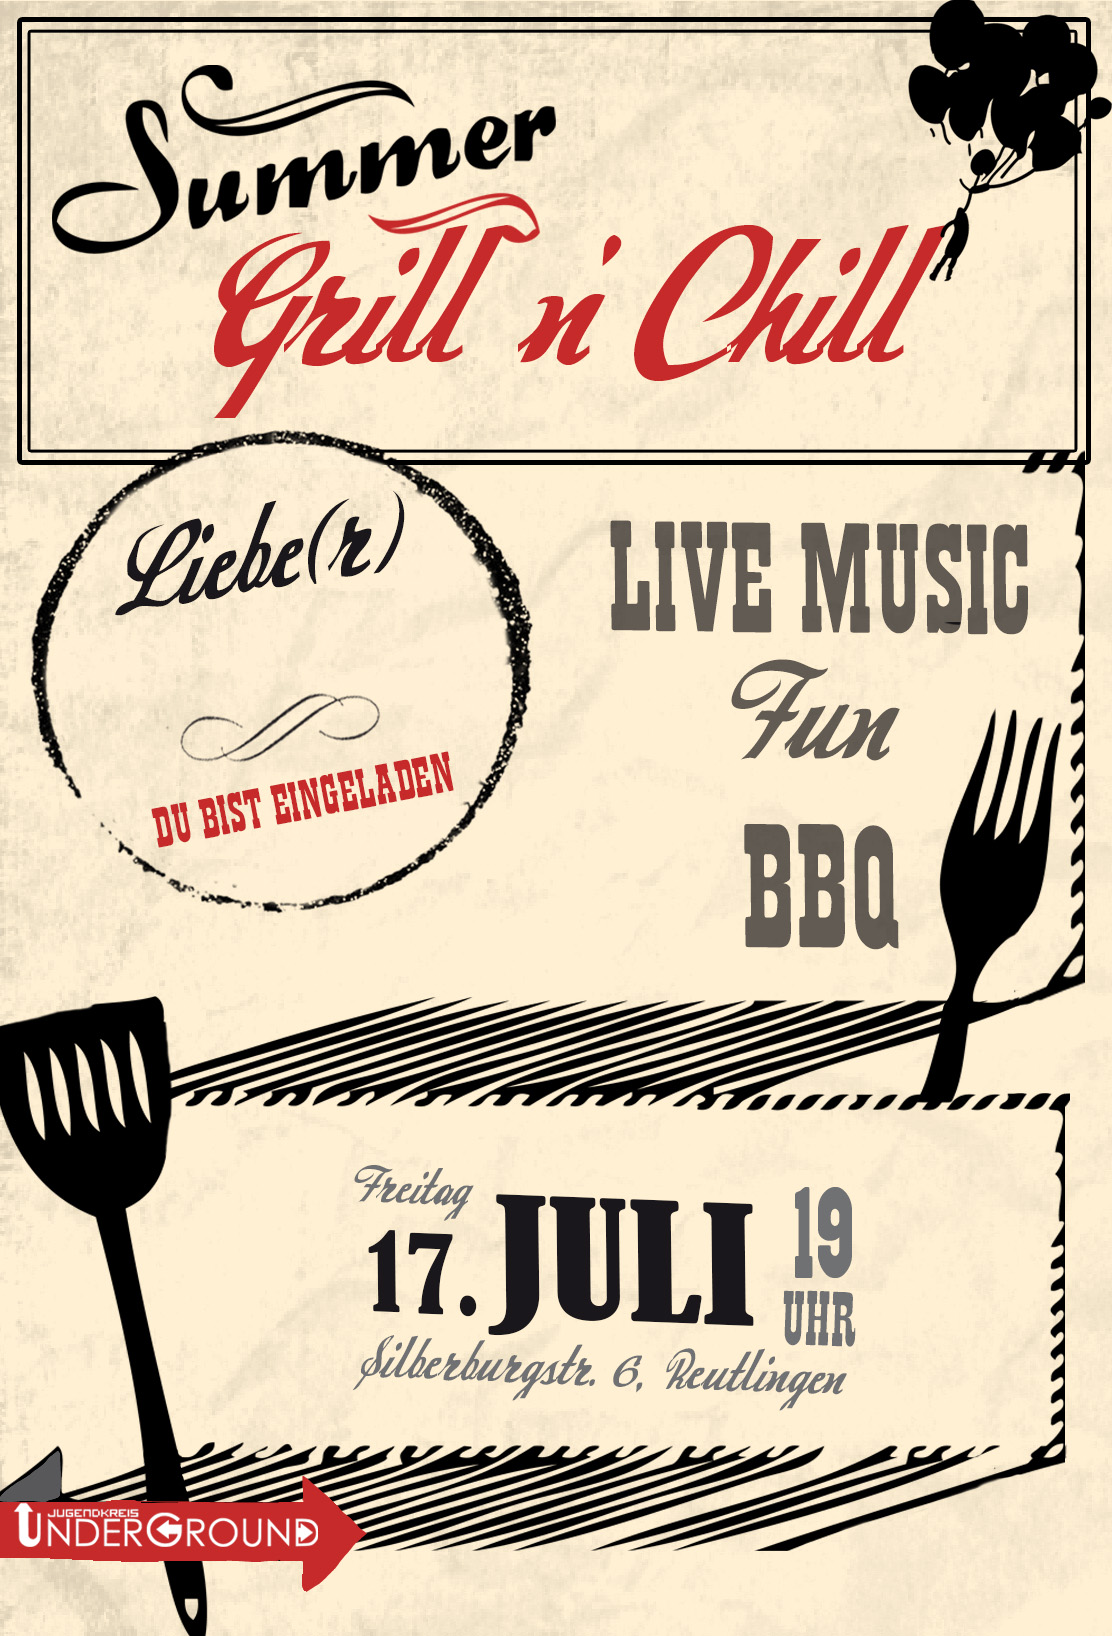 Grill n' Chill